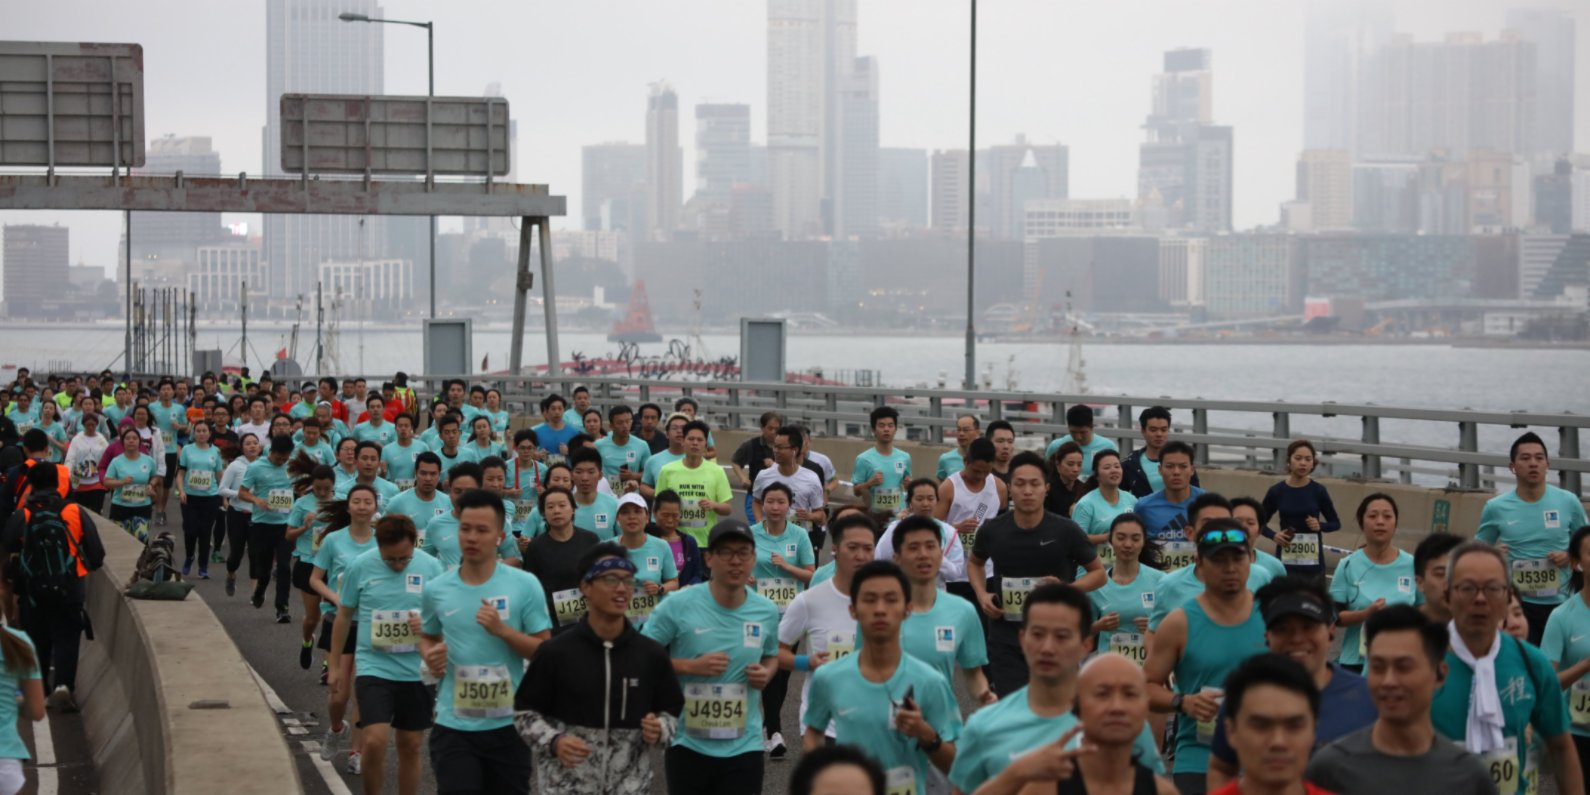 HK marathon scheduled on Oct 24, runners must be double-vaccinated